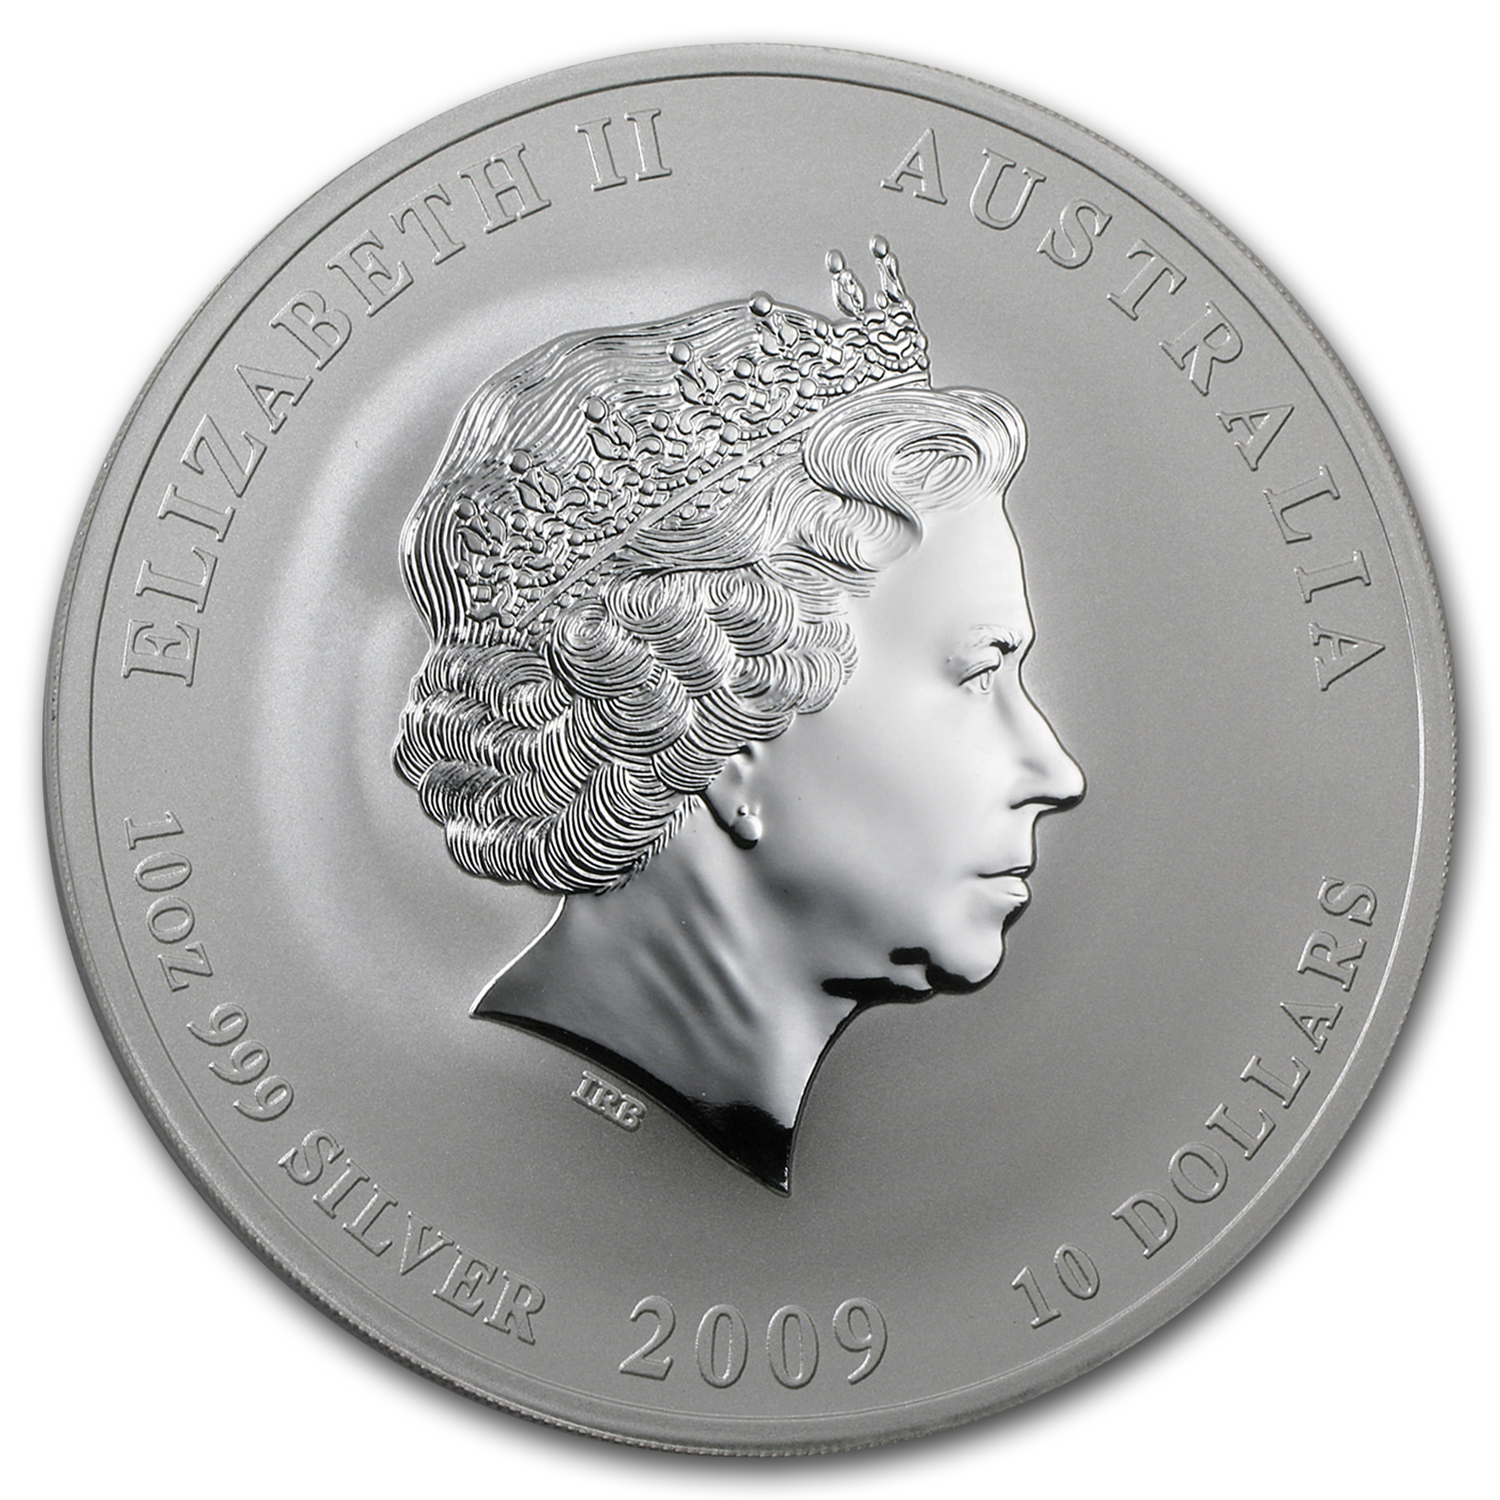 2009 Australia 10 oz Silver Year of the Ox BU (Series II)